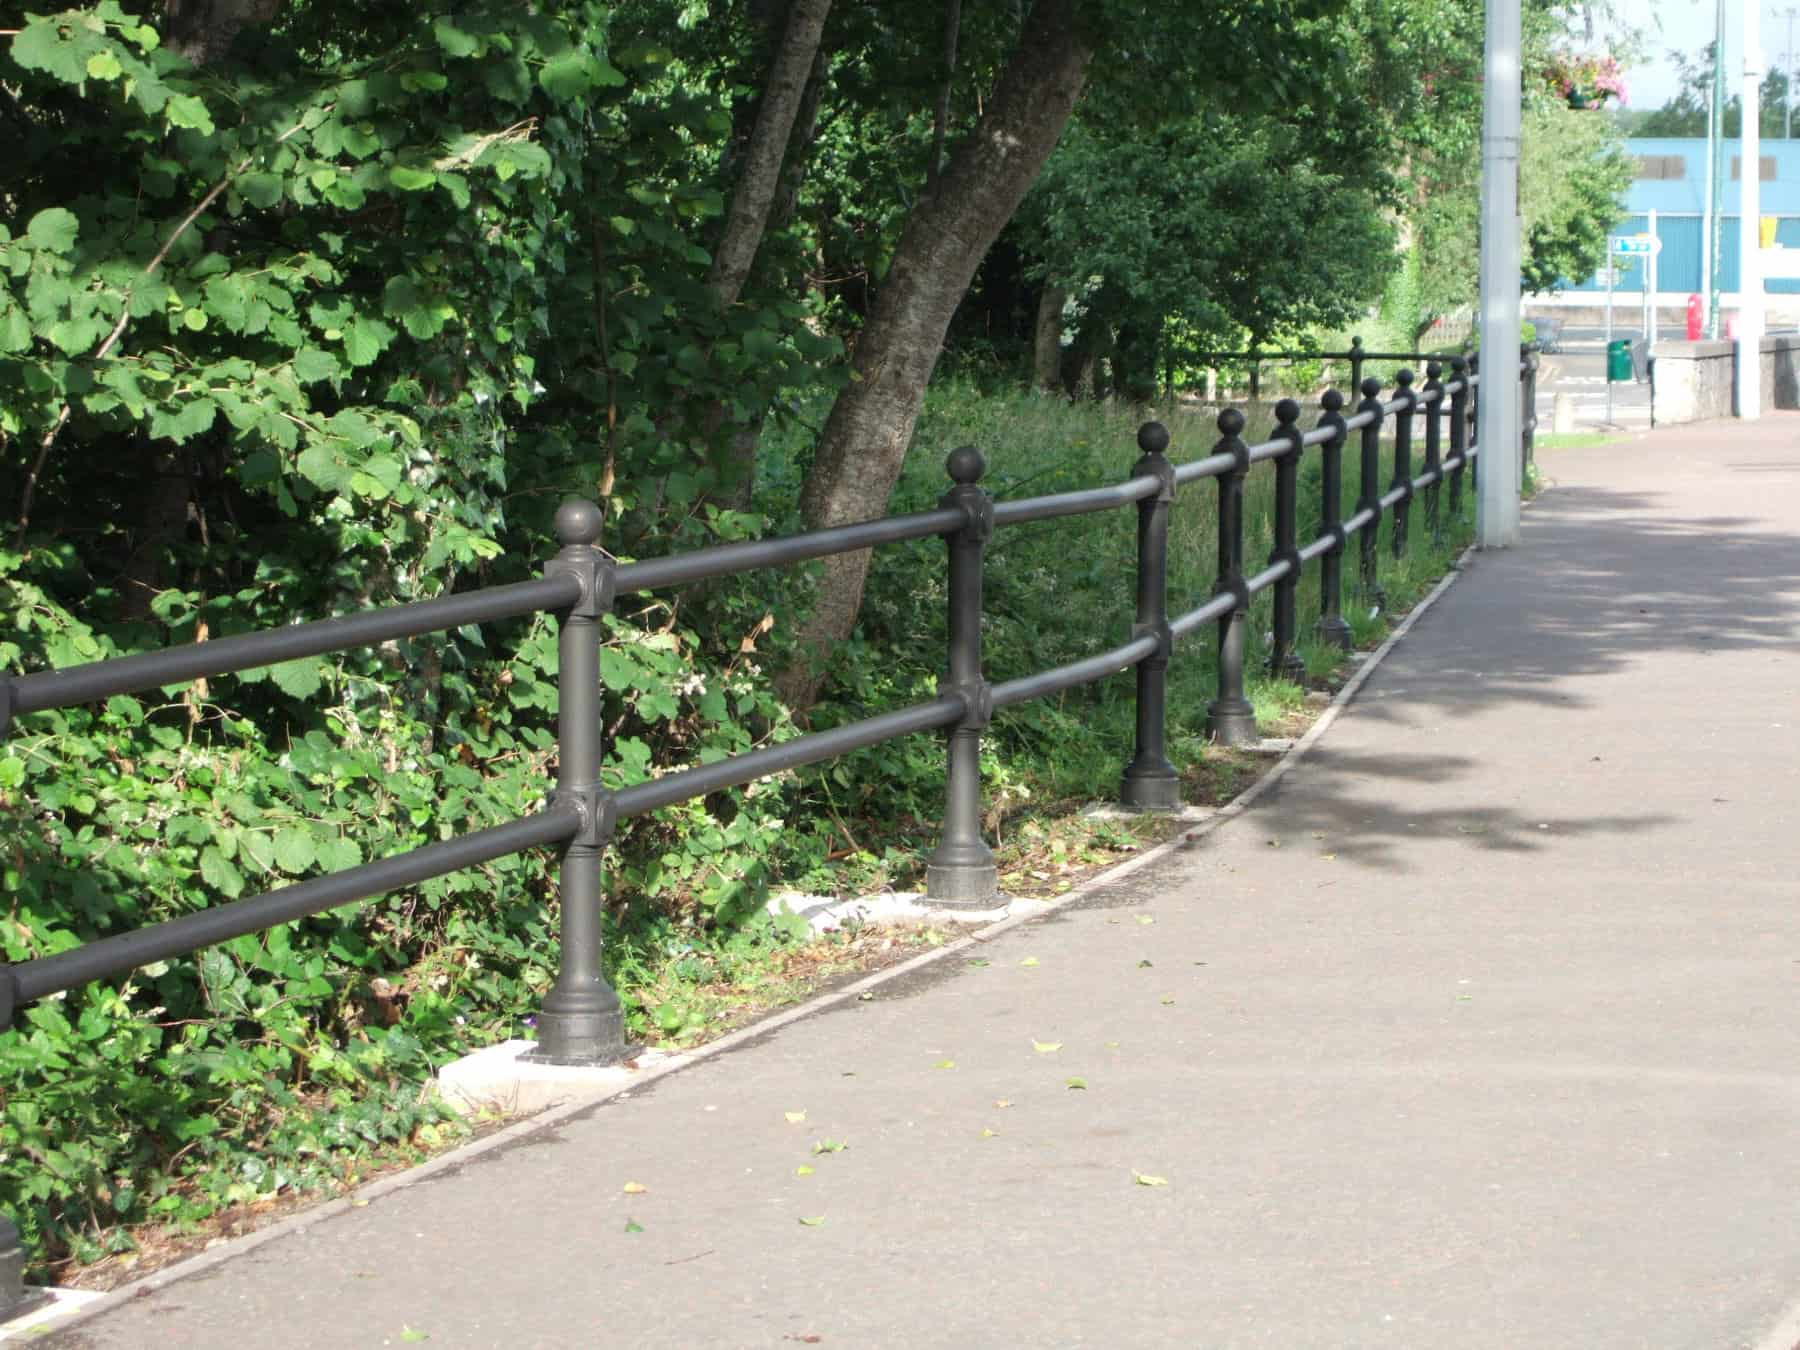 black public railings next to pathway and trees